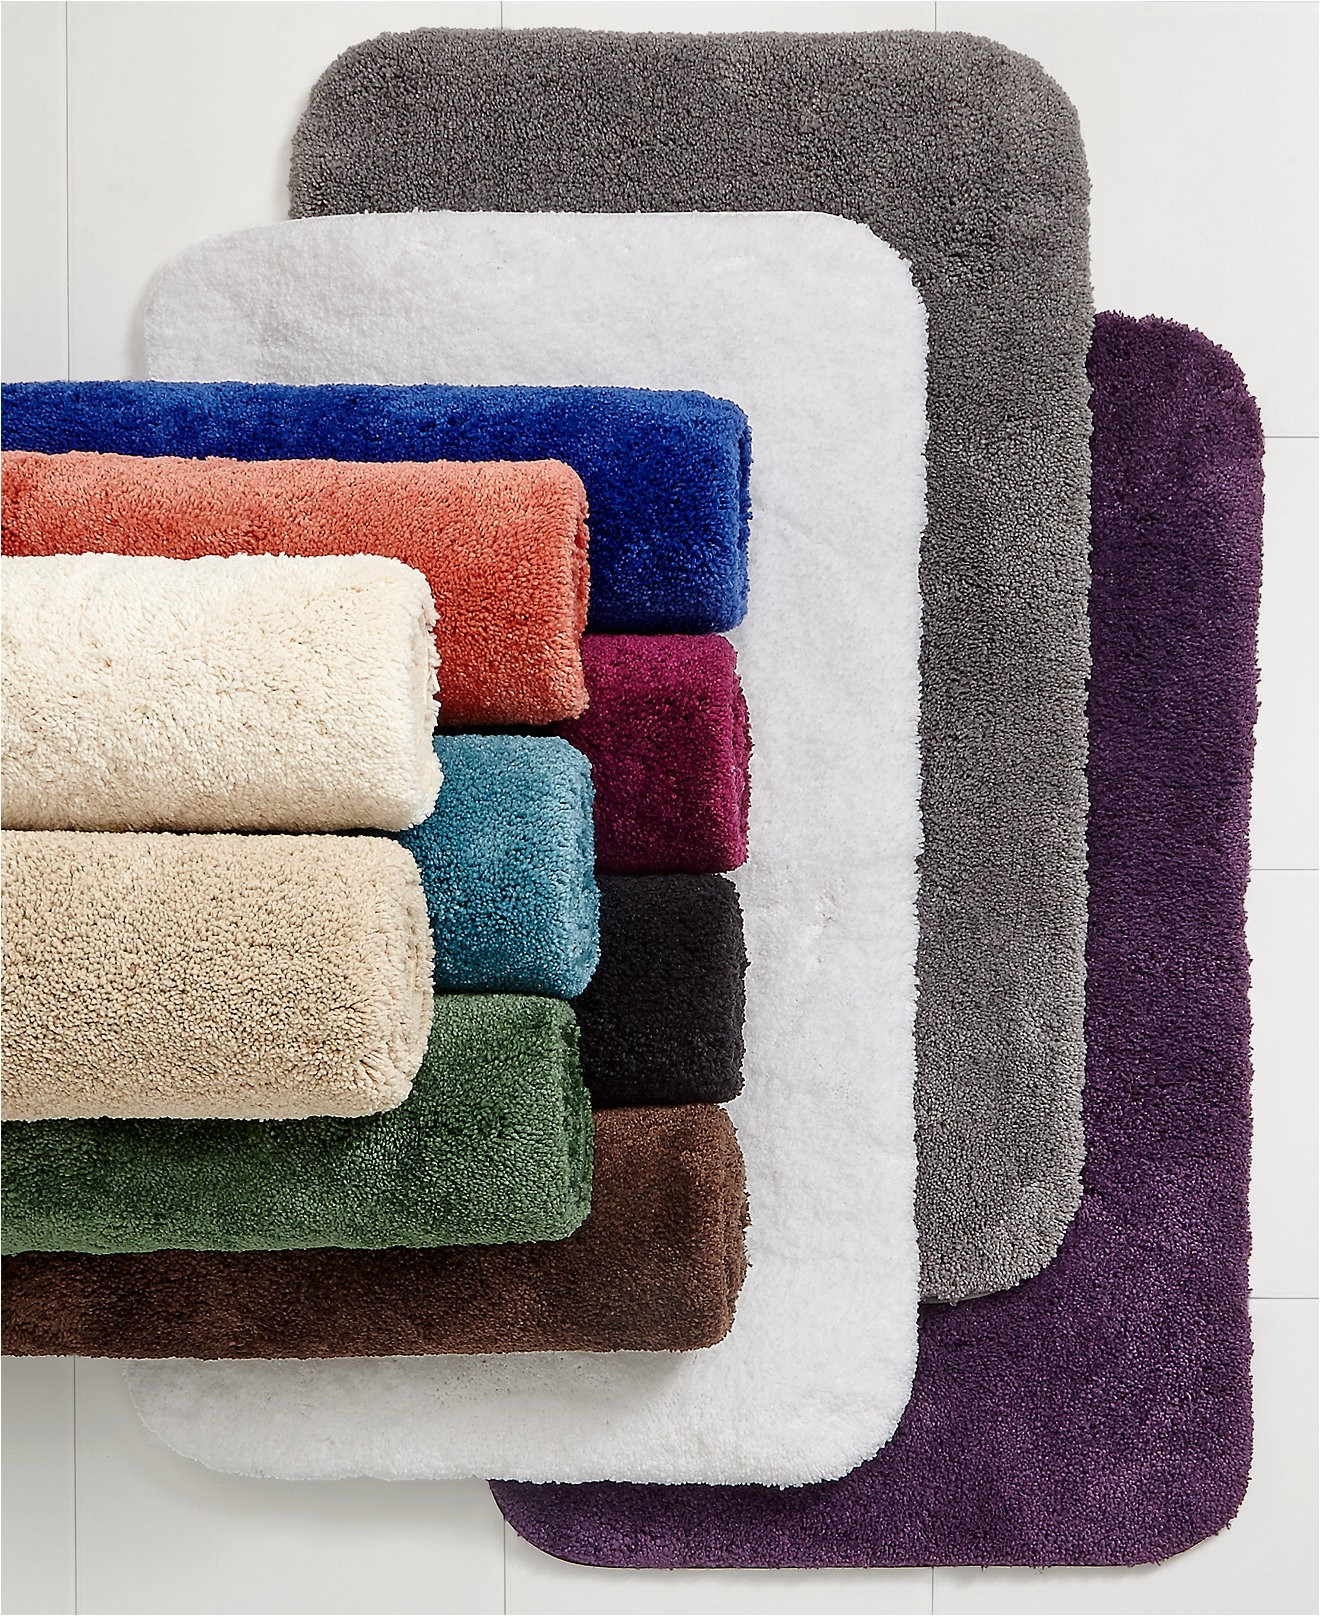 Jcpenney Bathroom Runner Rugs Jcpenney Bathroom Rugs Image Of Bathroom and Closet